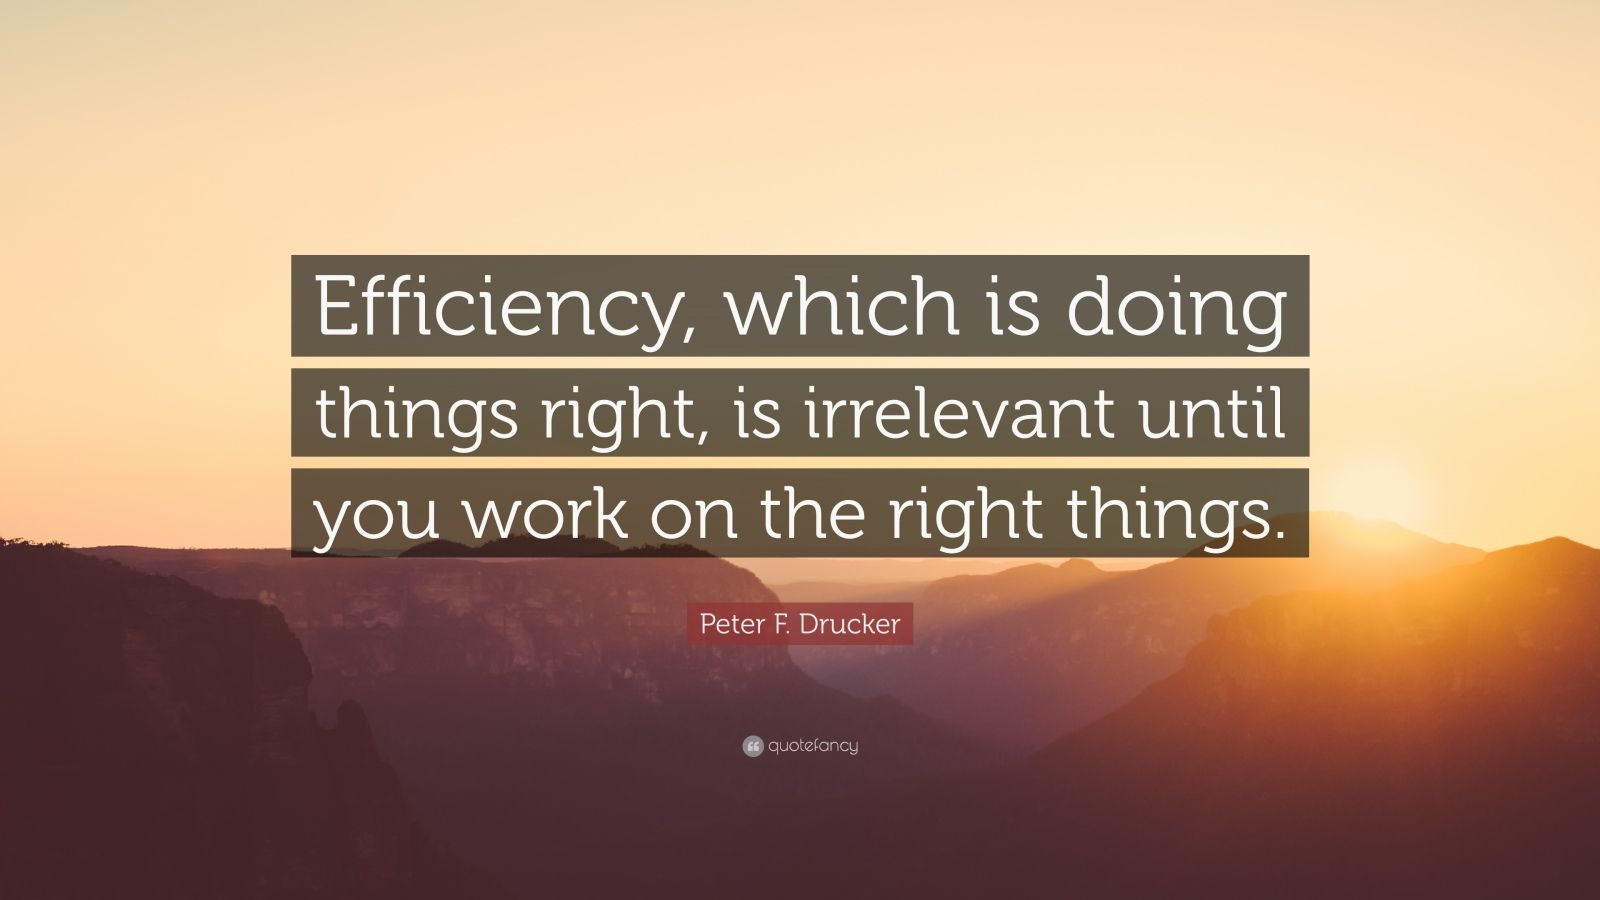 """Peter F. Drucker Quote: """"Efficiency, which is doing things right, is irrelevant until you work on the right things."""""""